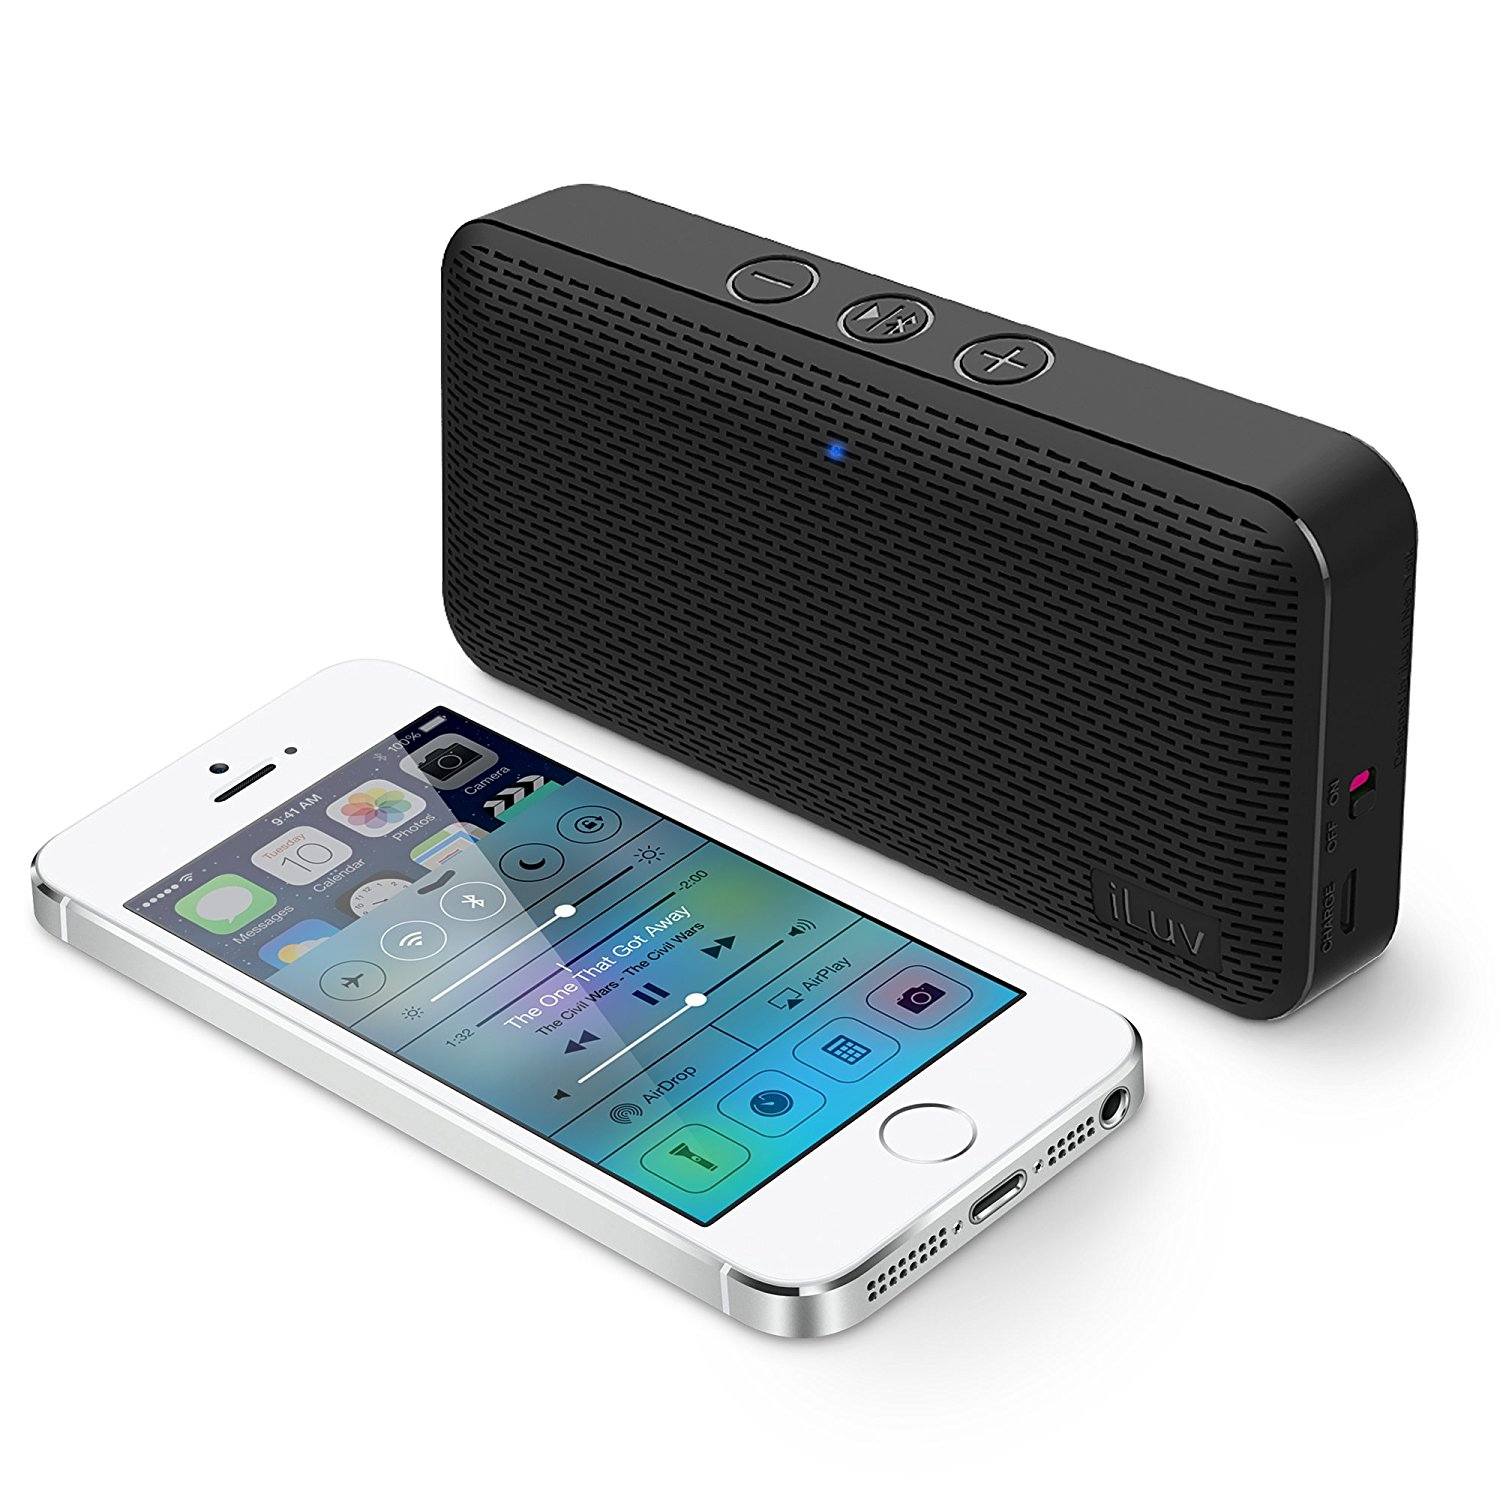 Cool affordable gifts under $15: iLuv mini ultra slim Bluetooth speaker